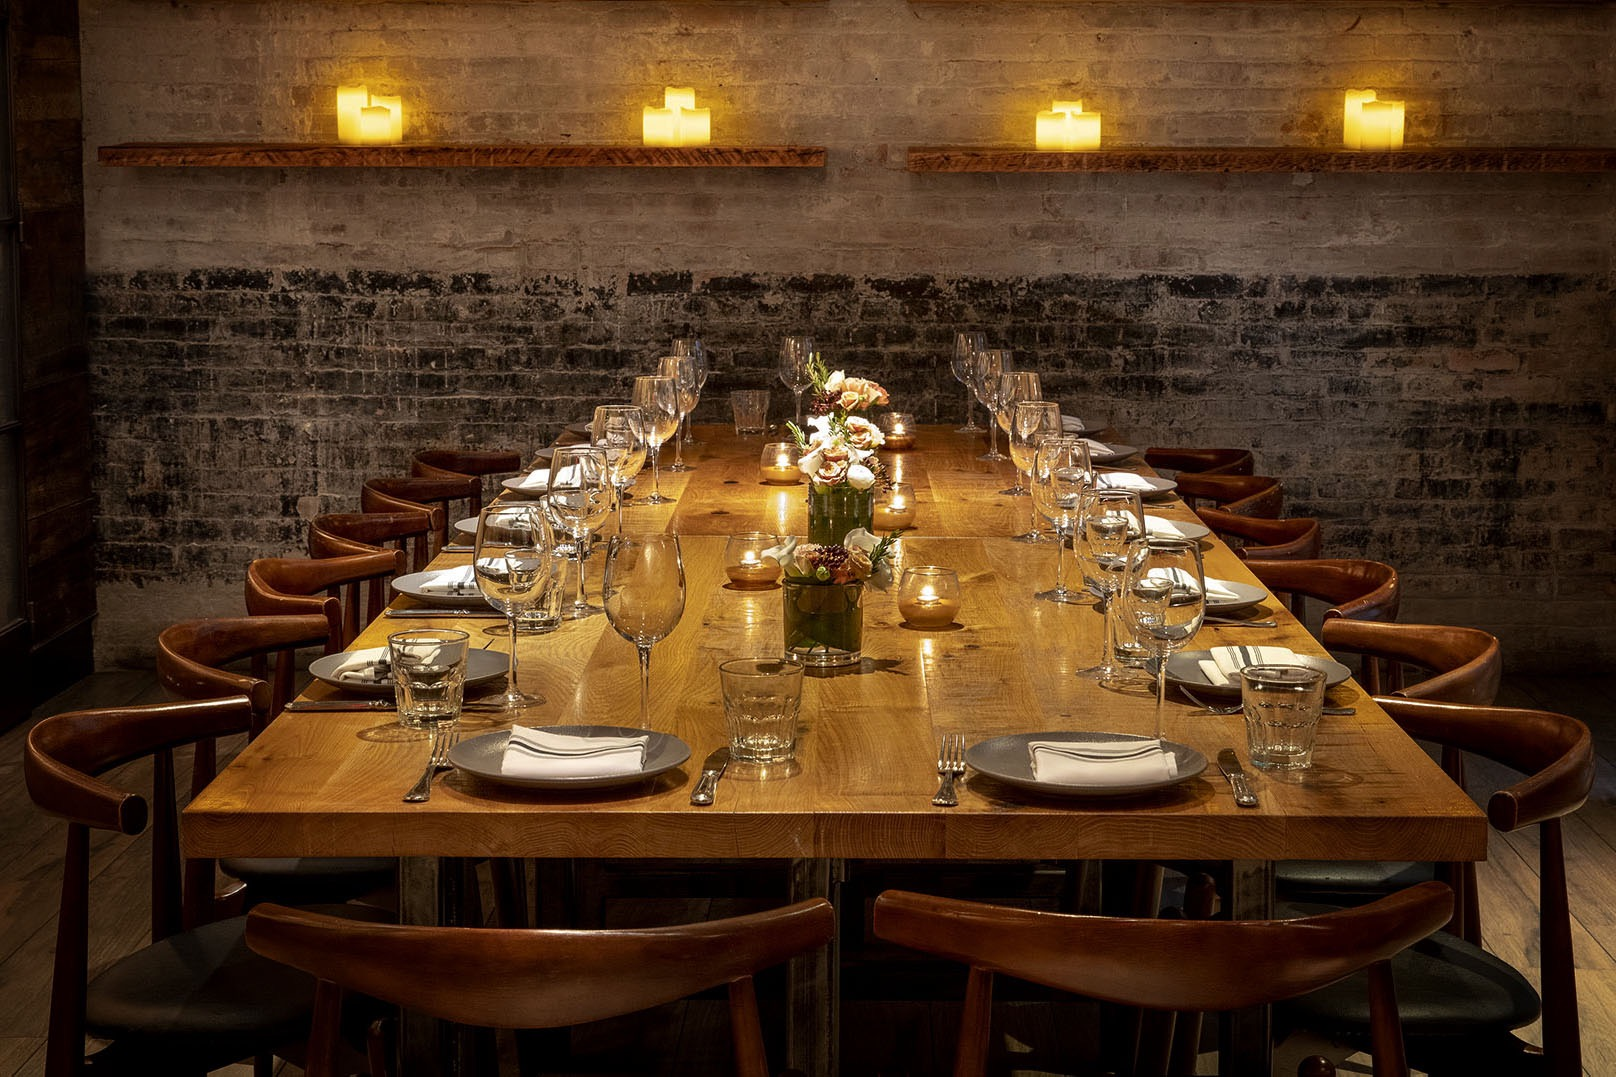 A dining table in a private dining room at the restaurant Covina.